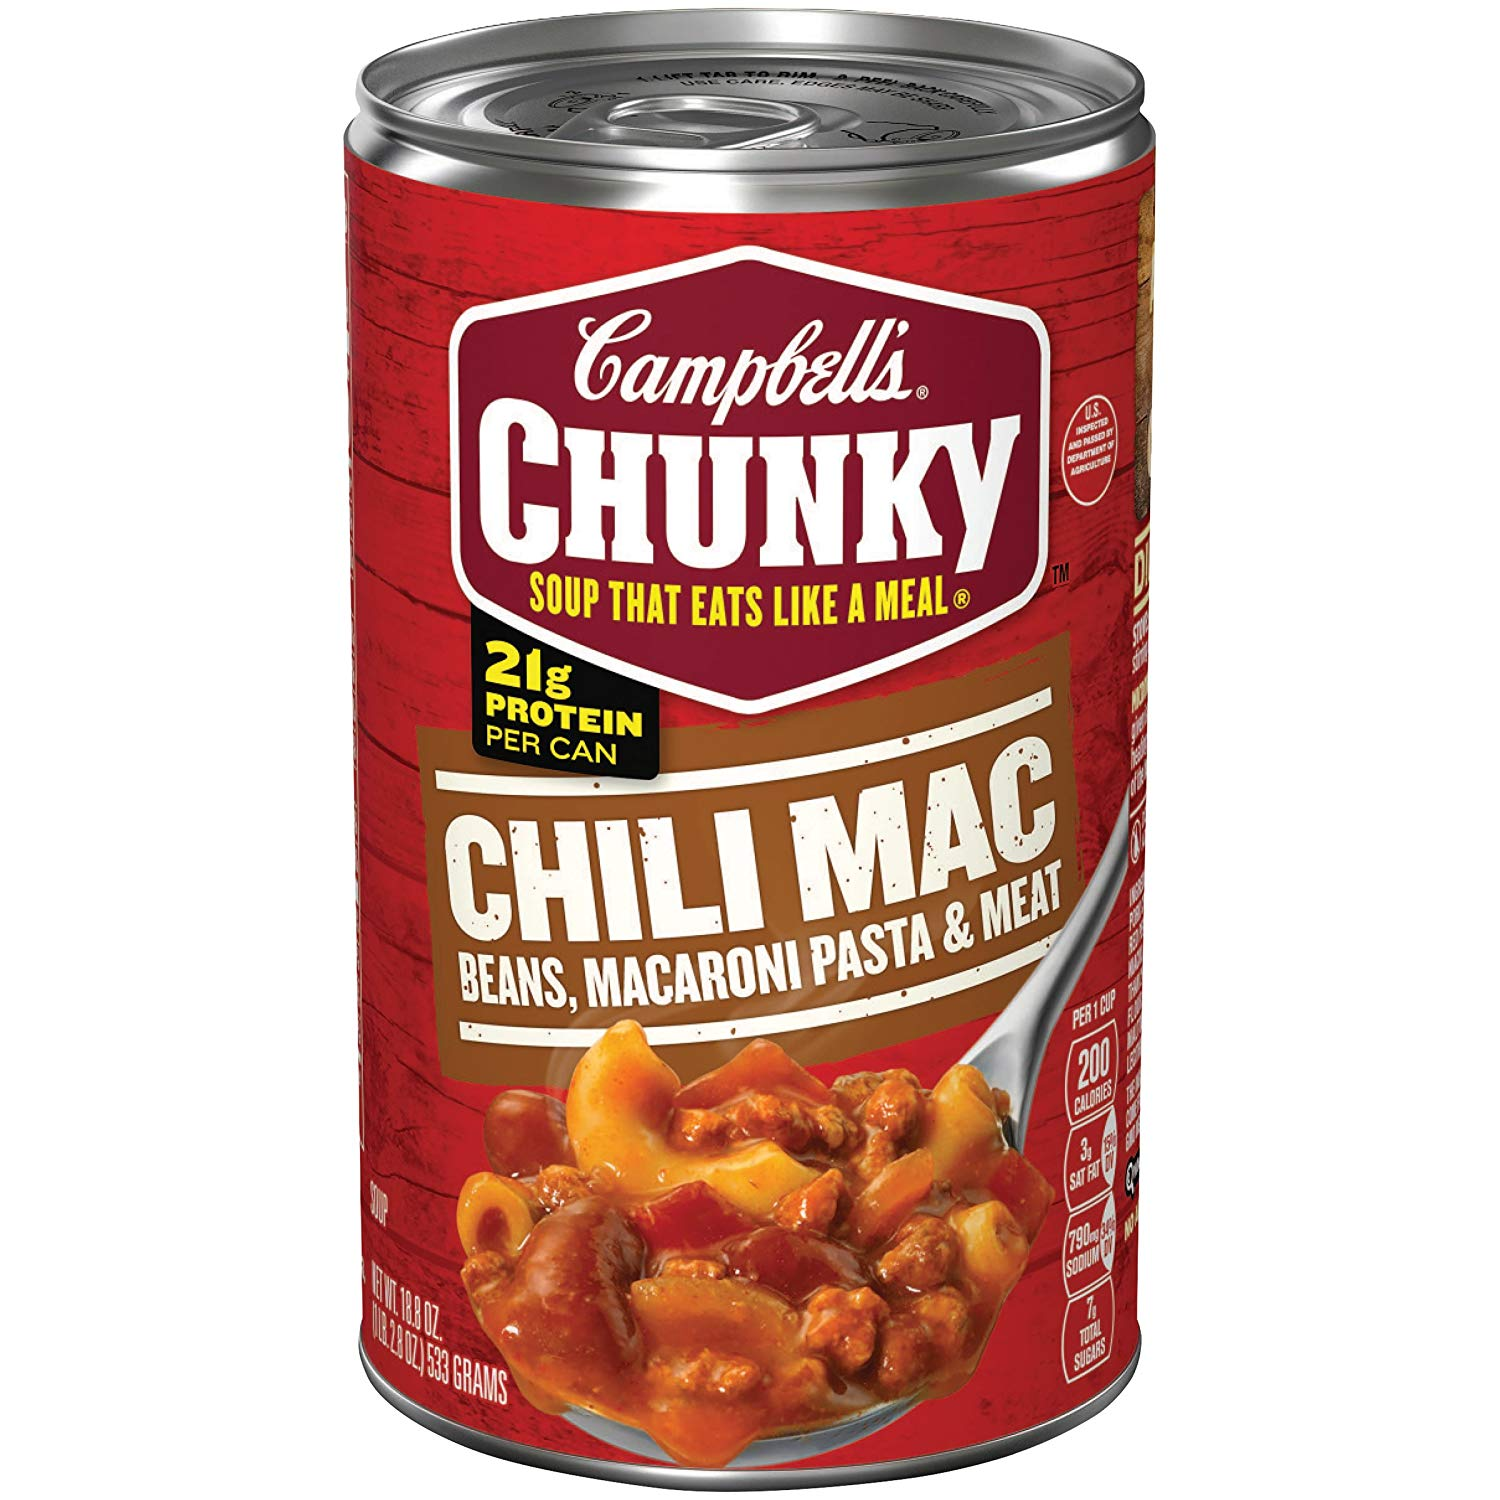 1500x1500 Campbell's Chunky Chili Mac Soup, Oz Can Prime